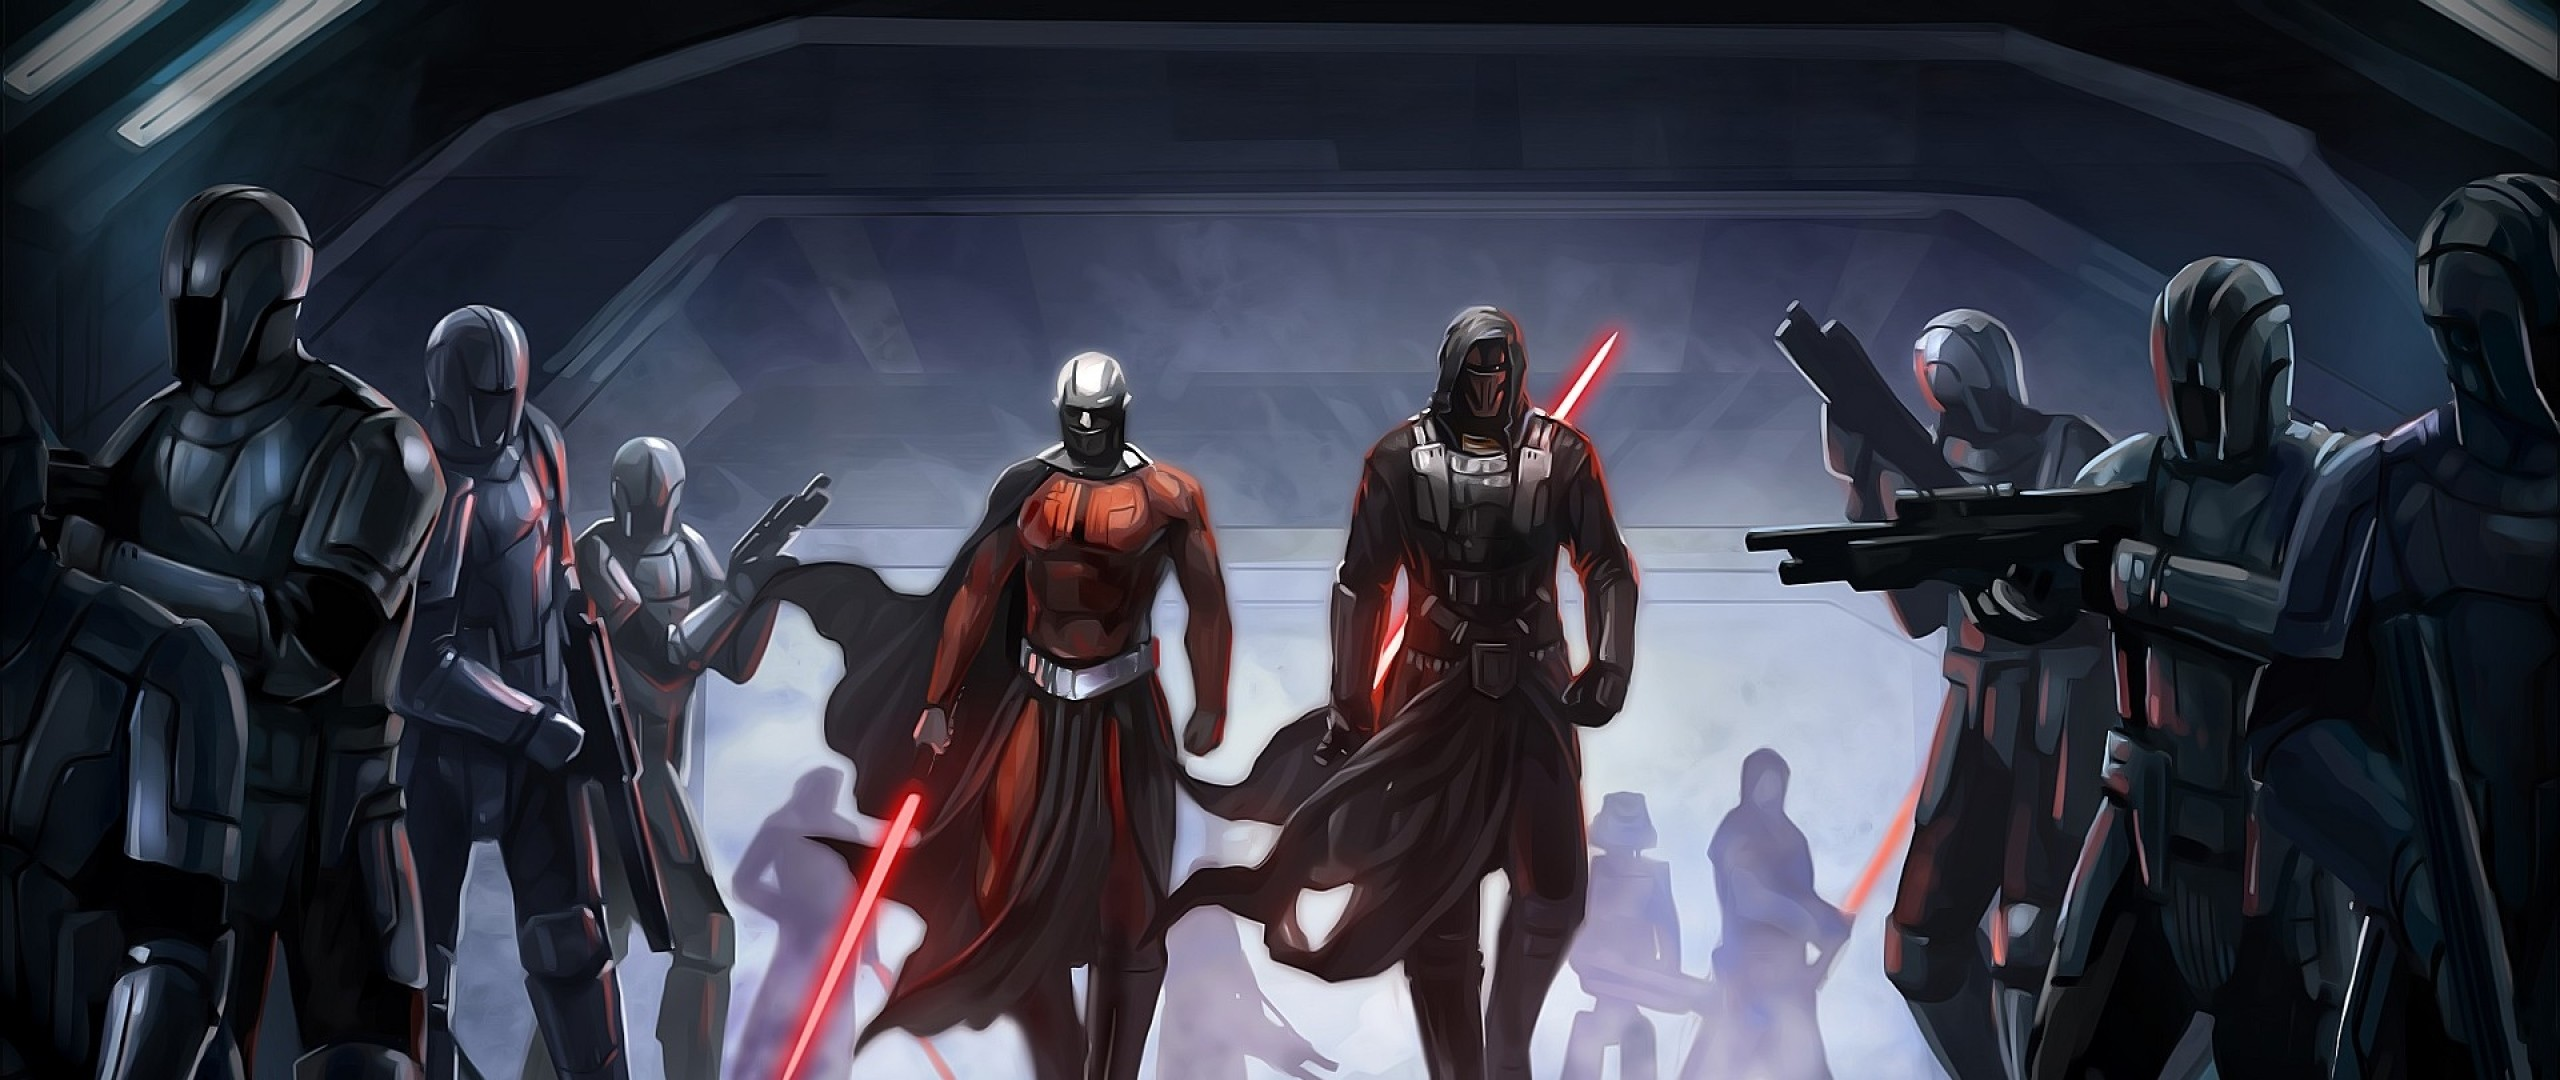 Star Wars Wallpaper 2560x1080 Posted By Samantha Cunningham